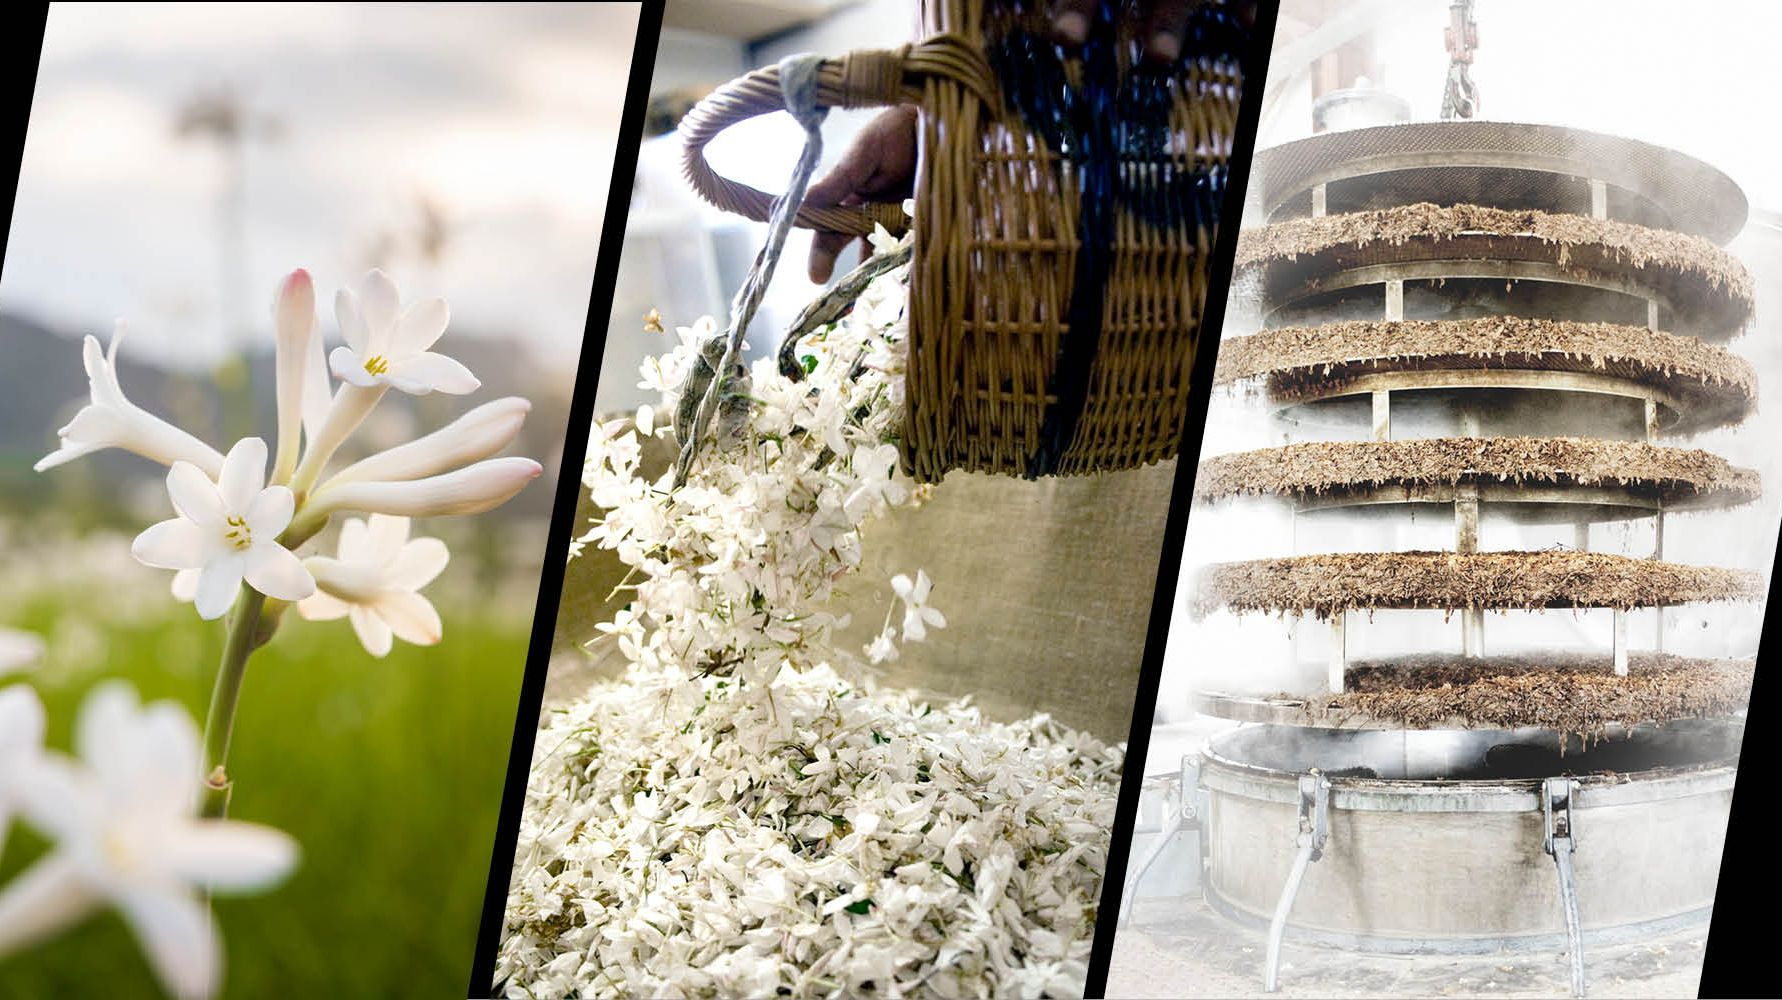 From flower to fragrance: the craftsmanship of a Chanel perfume